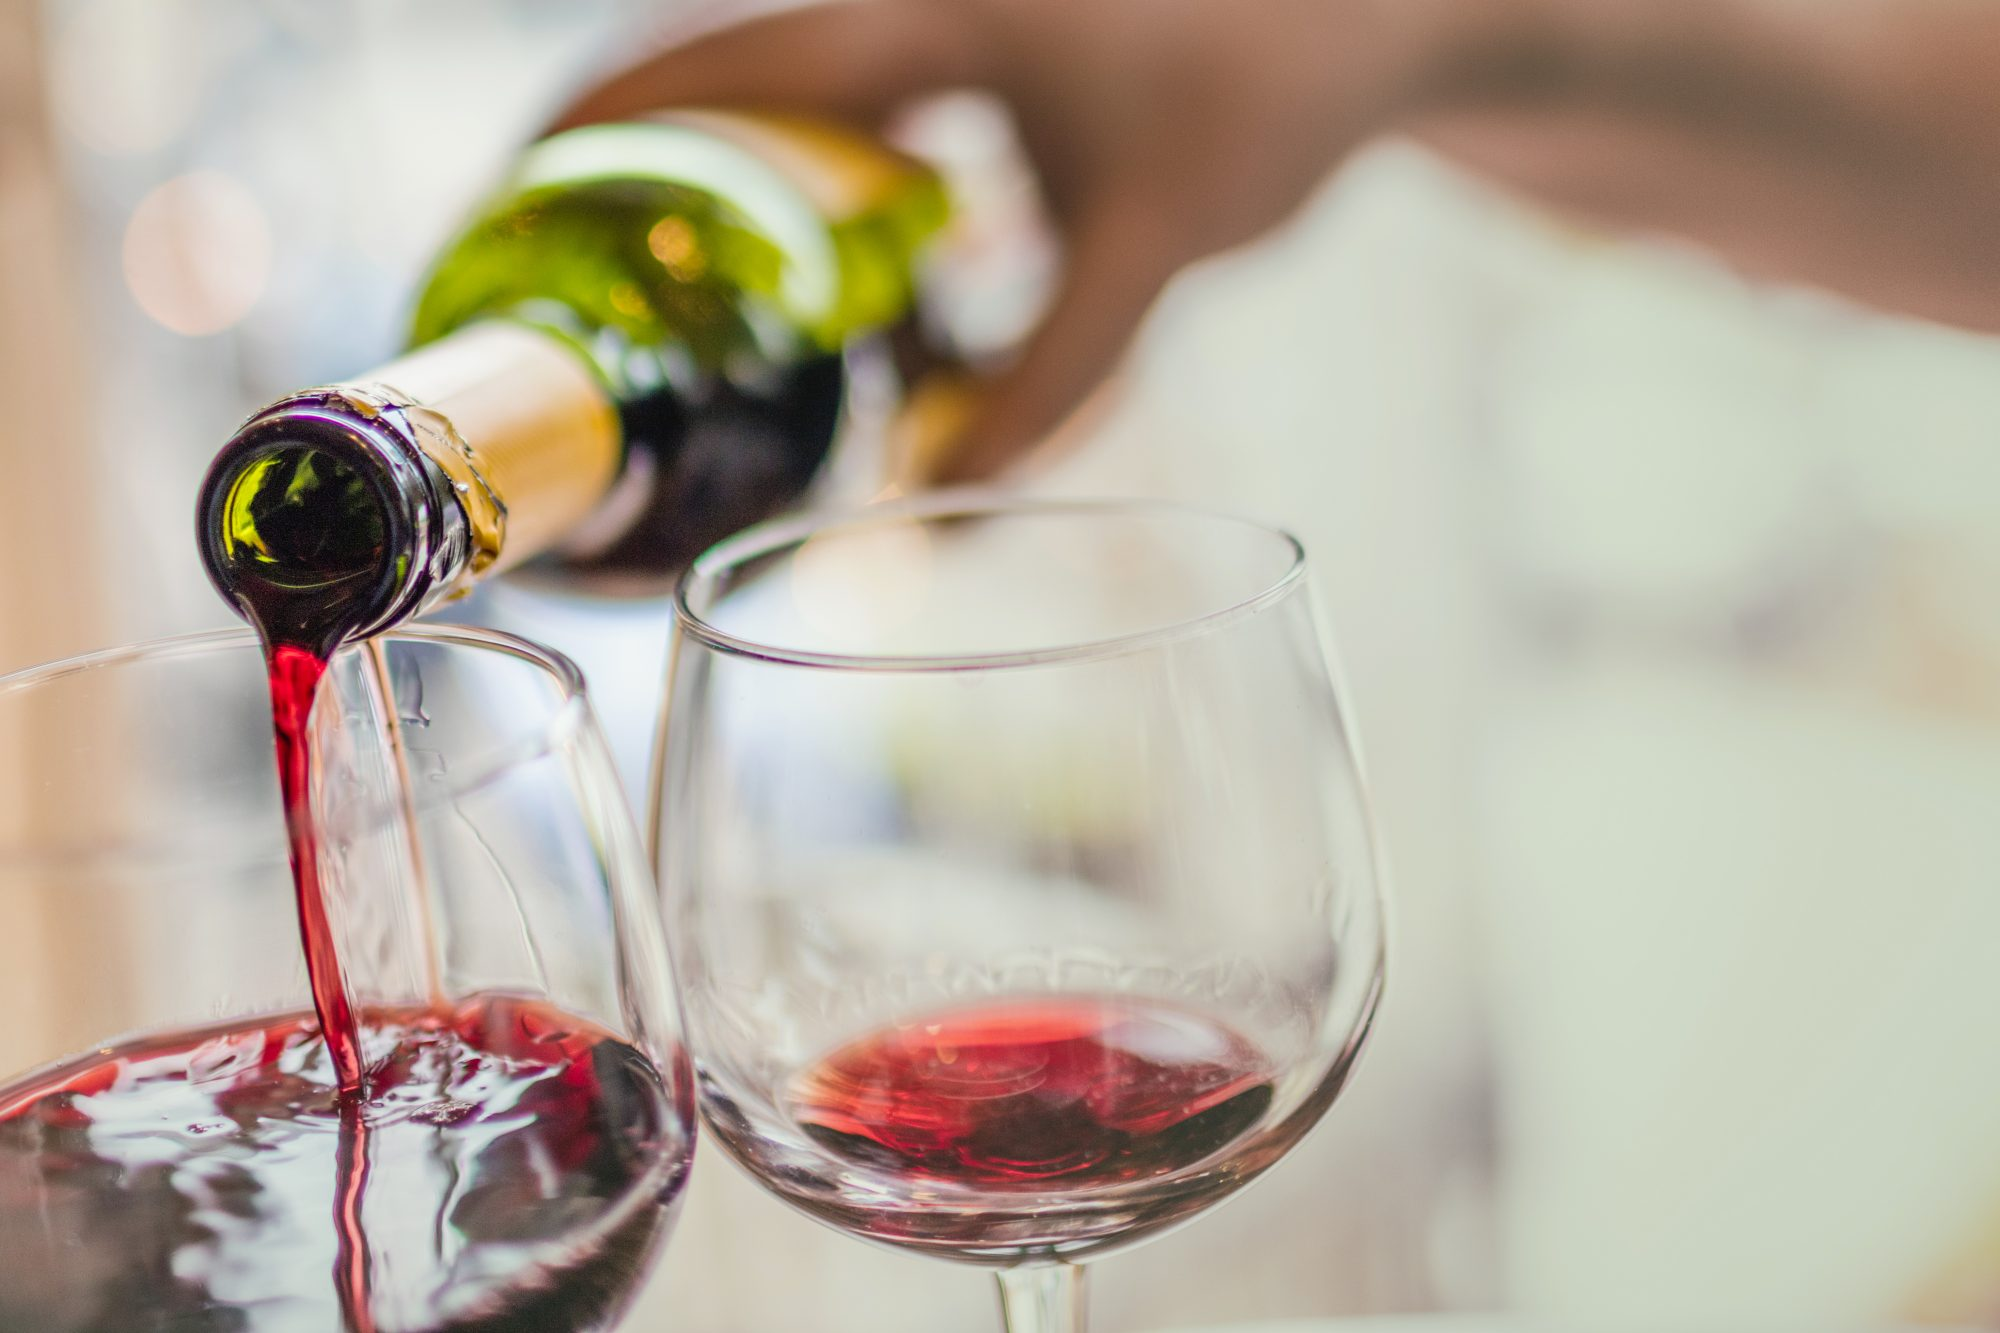 Drinking Red Wine And Eating Berries Three Times A Week Can Help Lower Your Blood Pressure